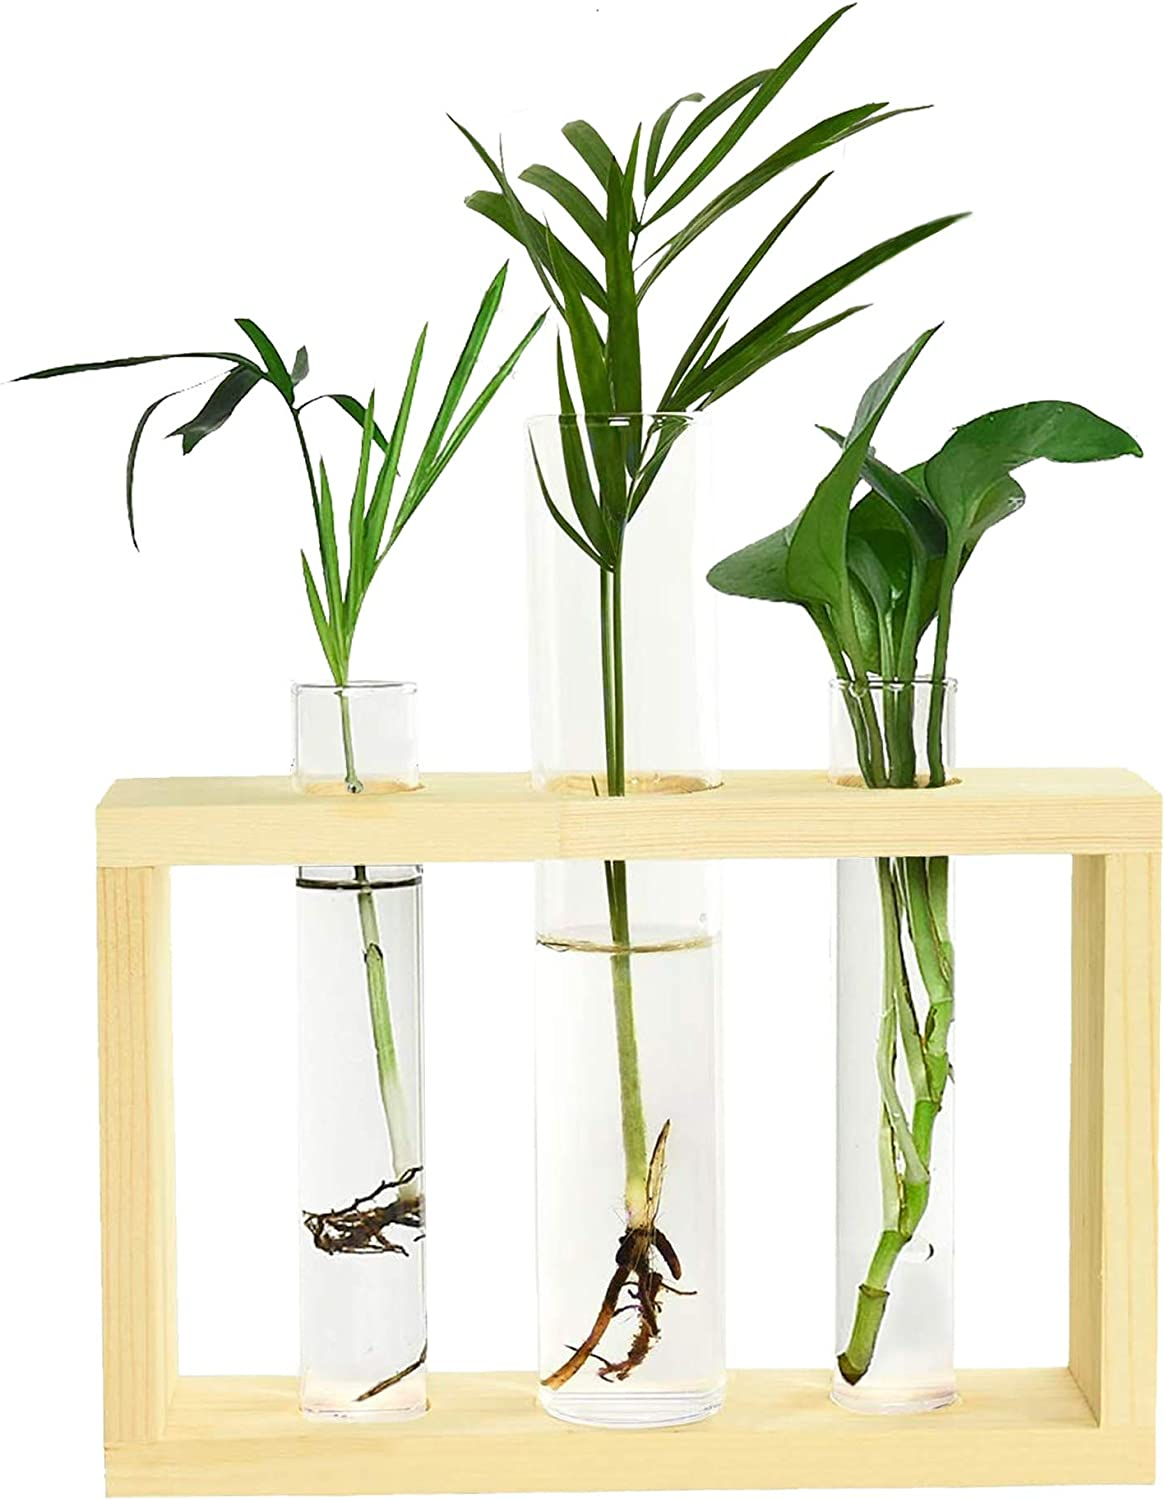 Fciqven Test Tube Planter with Wooden Stand, Glass Planter Propagation Station Test Tube Vase Flower Pots for Hydroponic Plants Home Garden Decoration (3 Test Tube)